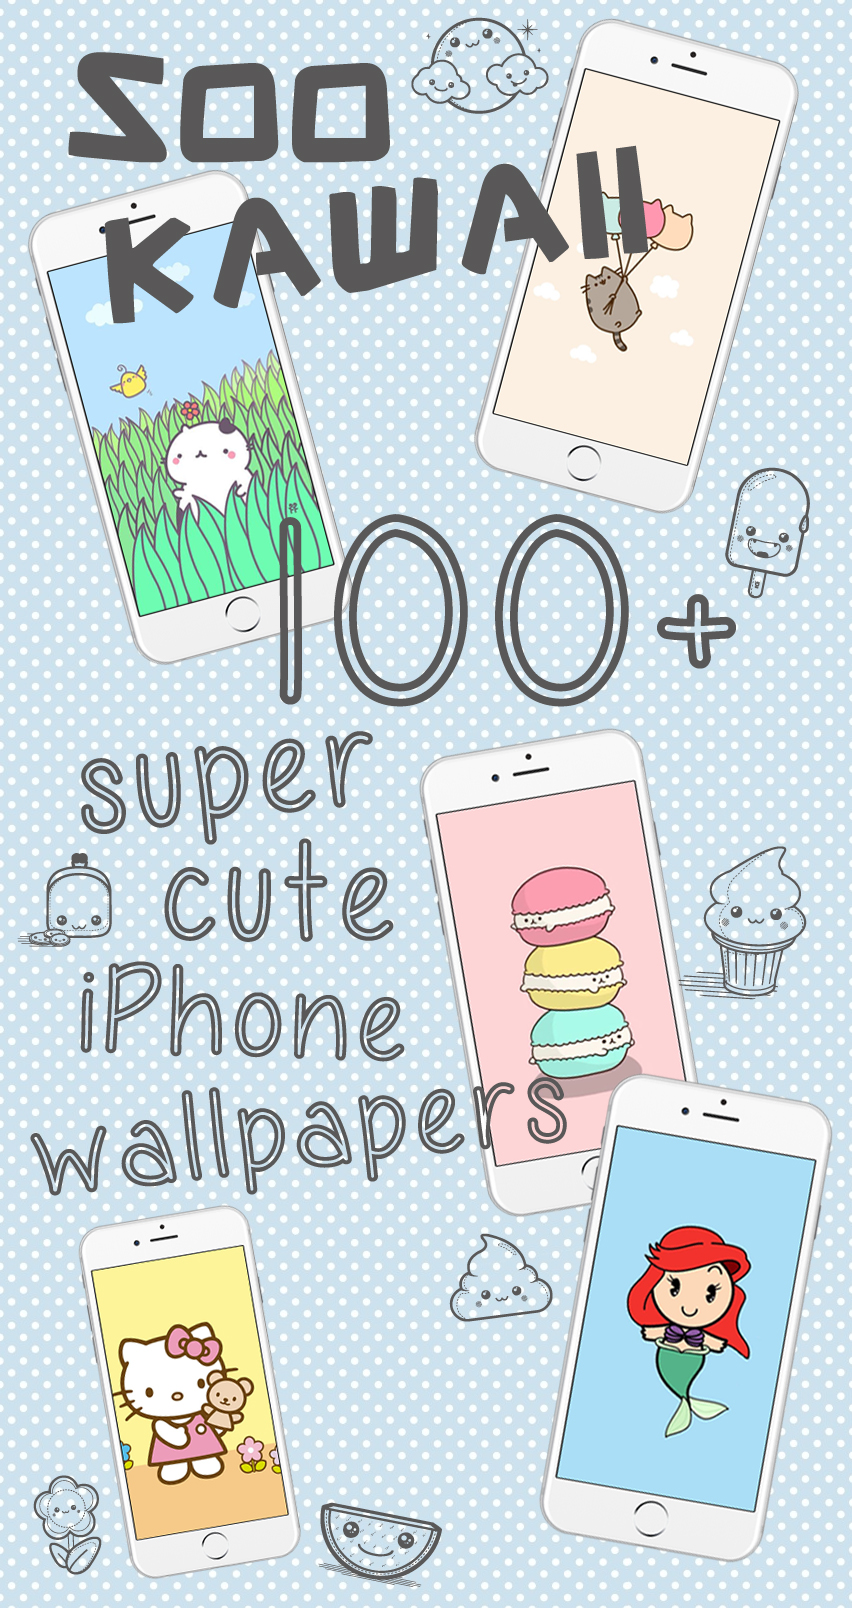 100+ Soo Kawaii Wallpapers for iPhone & Android ★ Check them out at www.preppywallpapers.com or @blossomcases